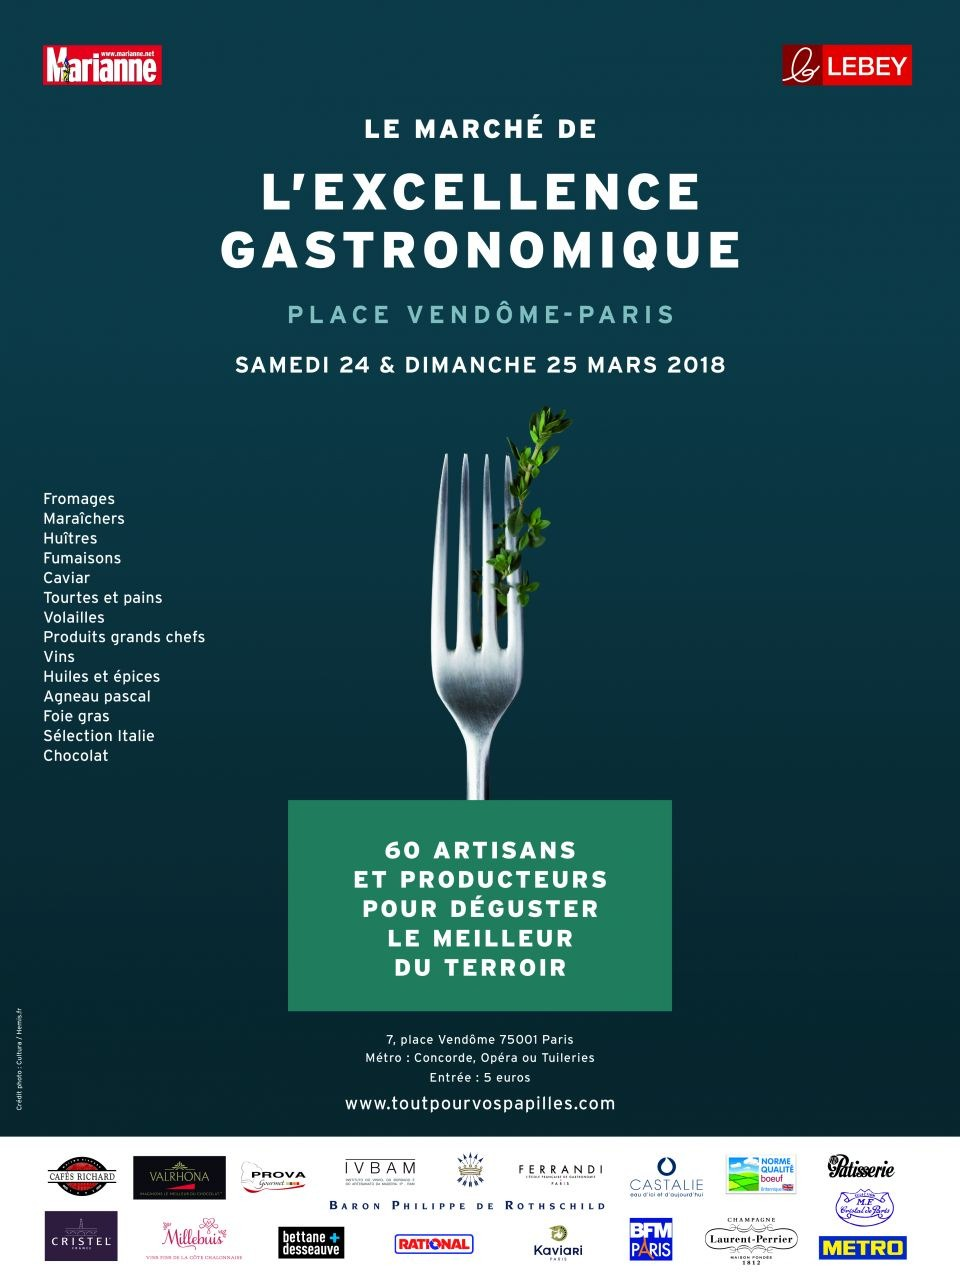 L'excellence Gastronomique à Paris !